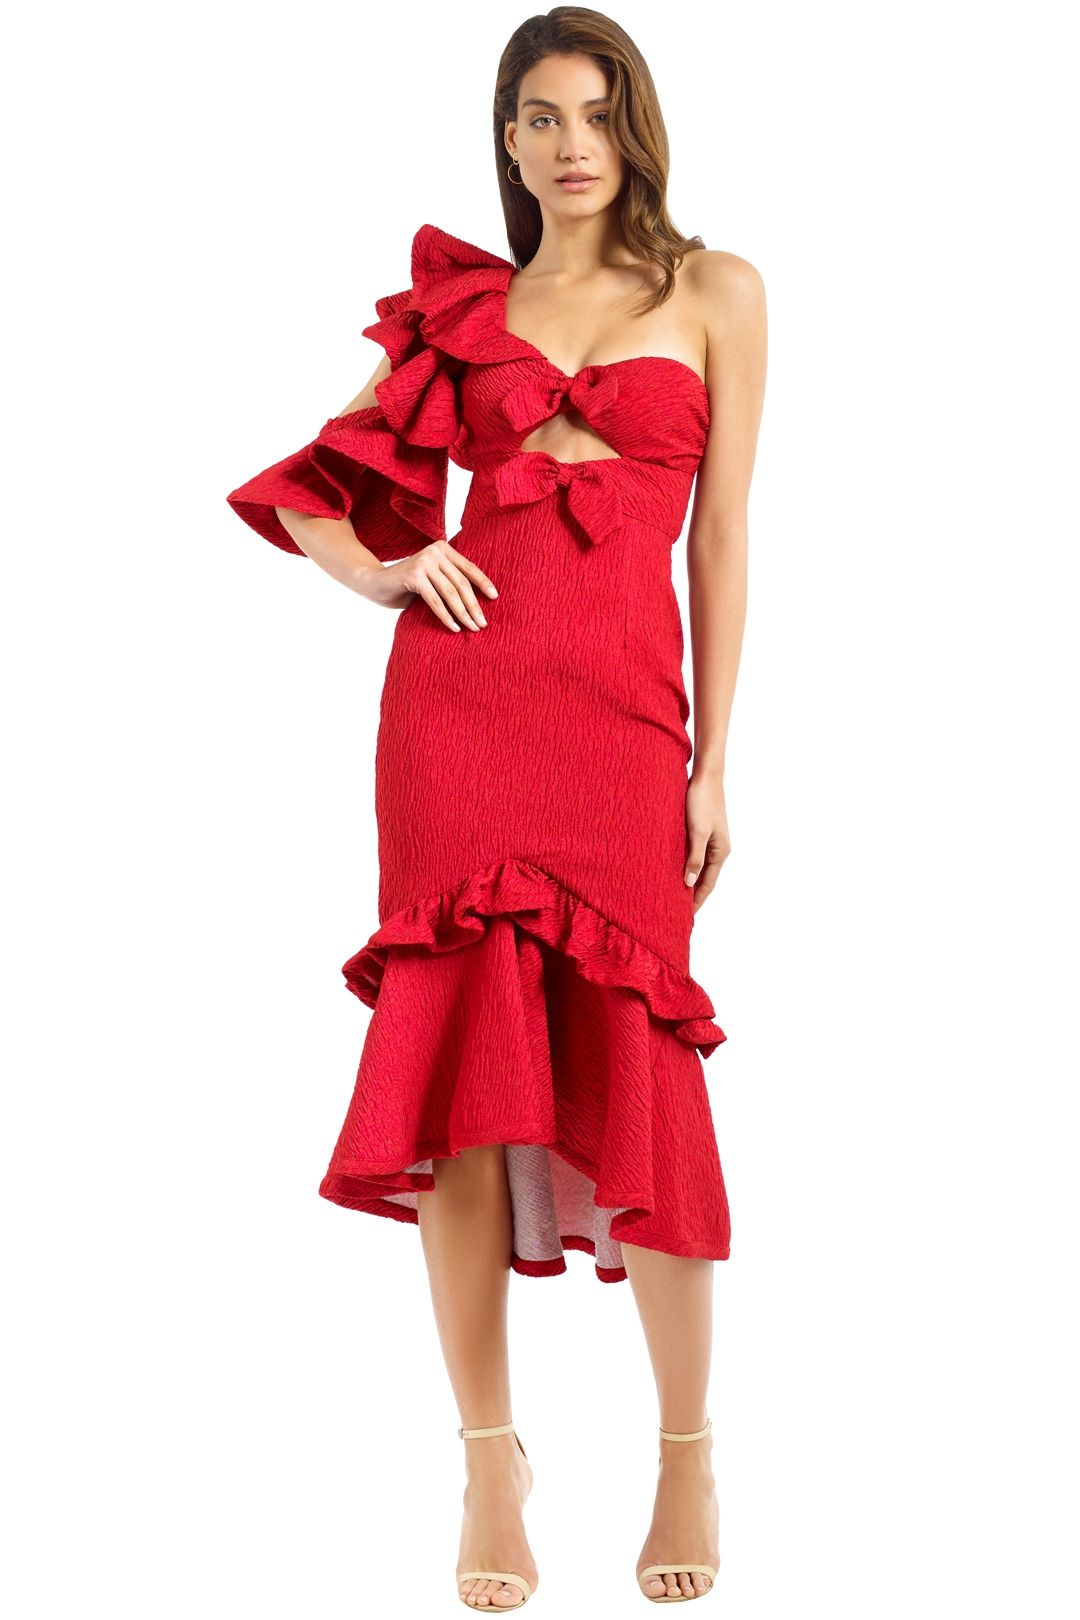 Nicola Finetti - Deidre Dress - Red - Front